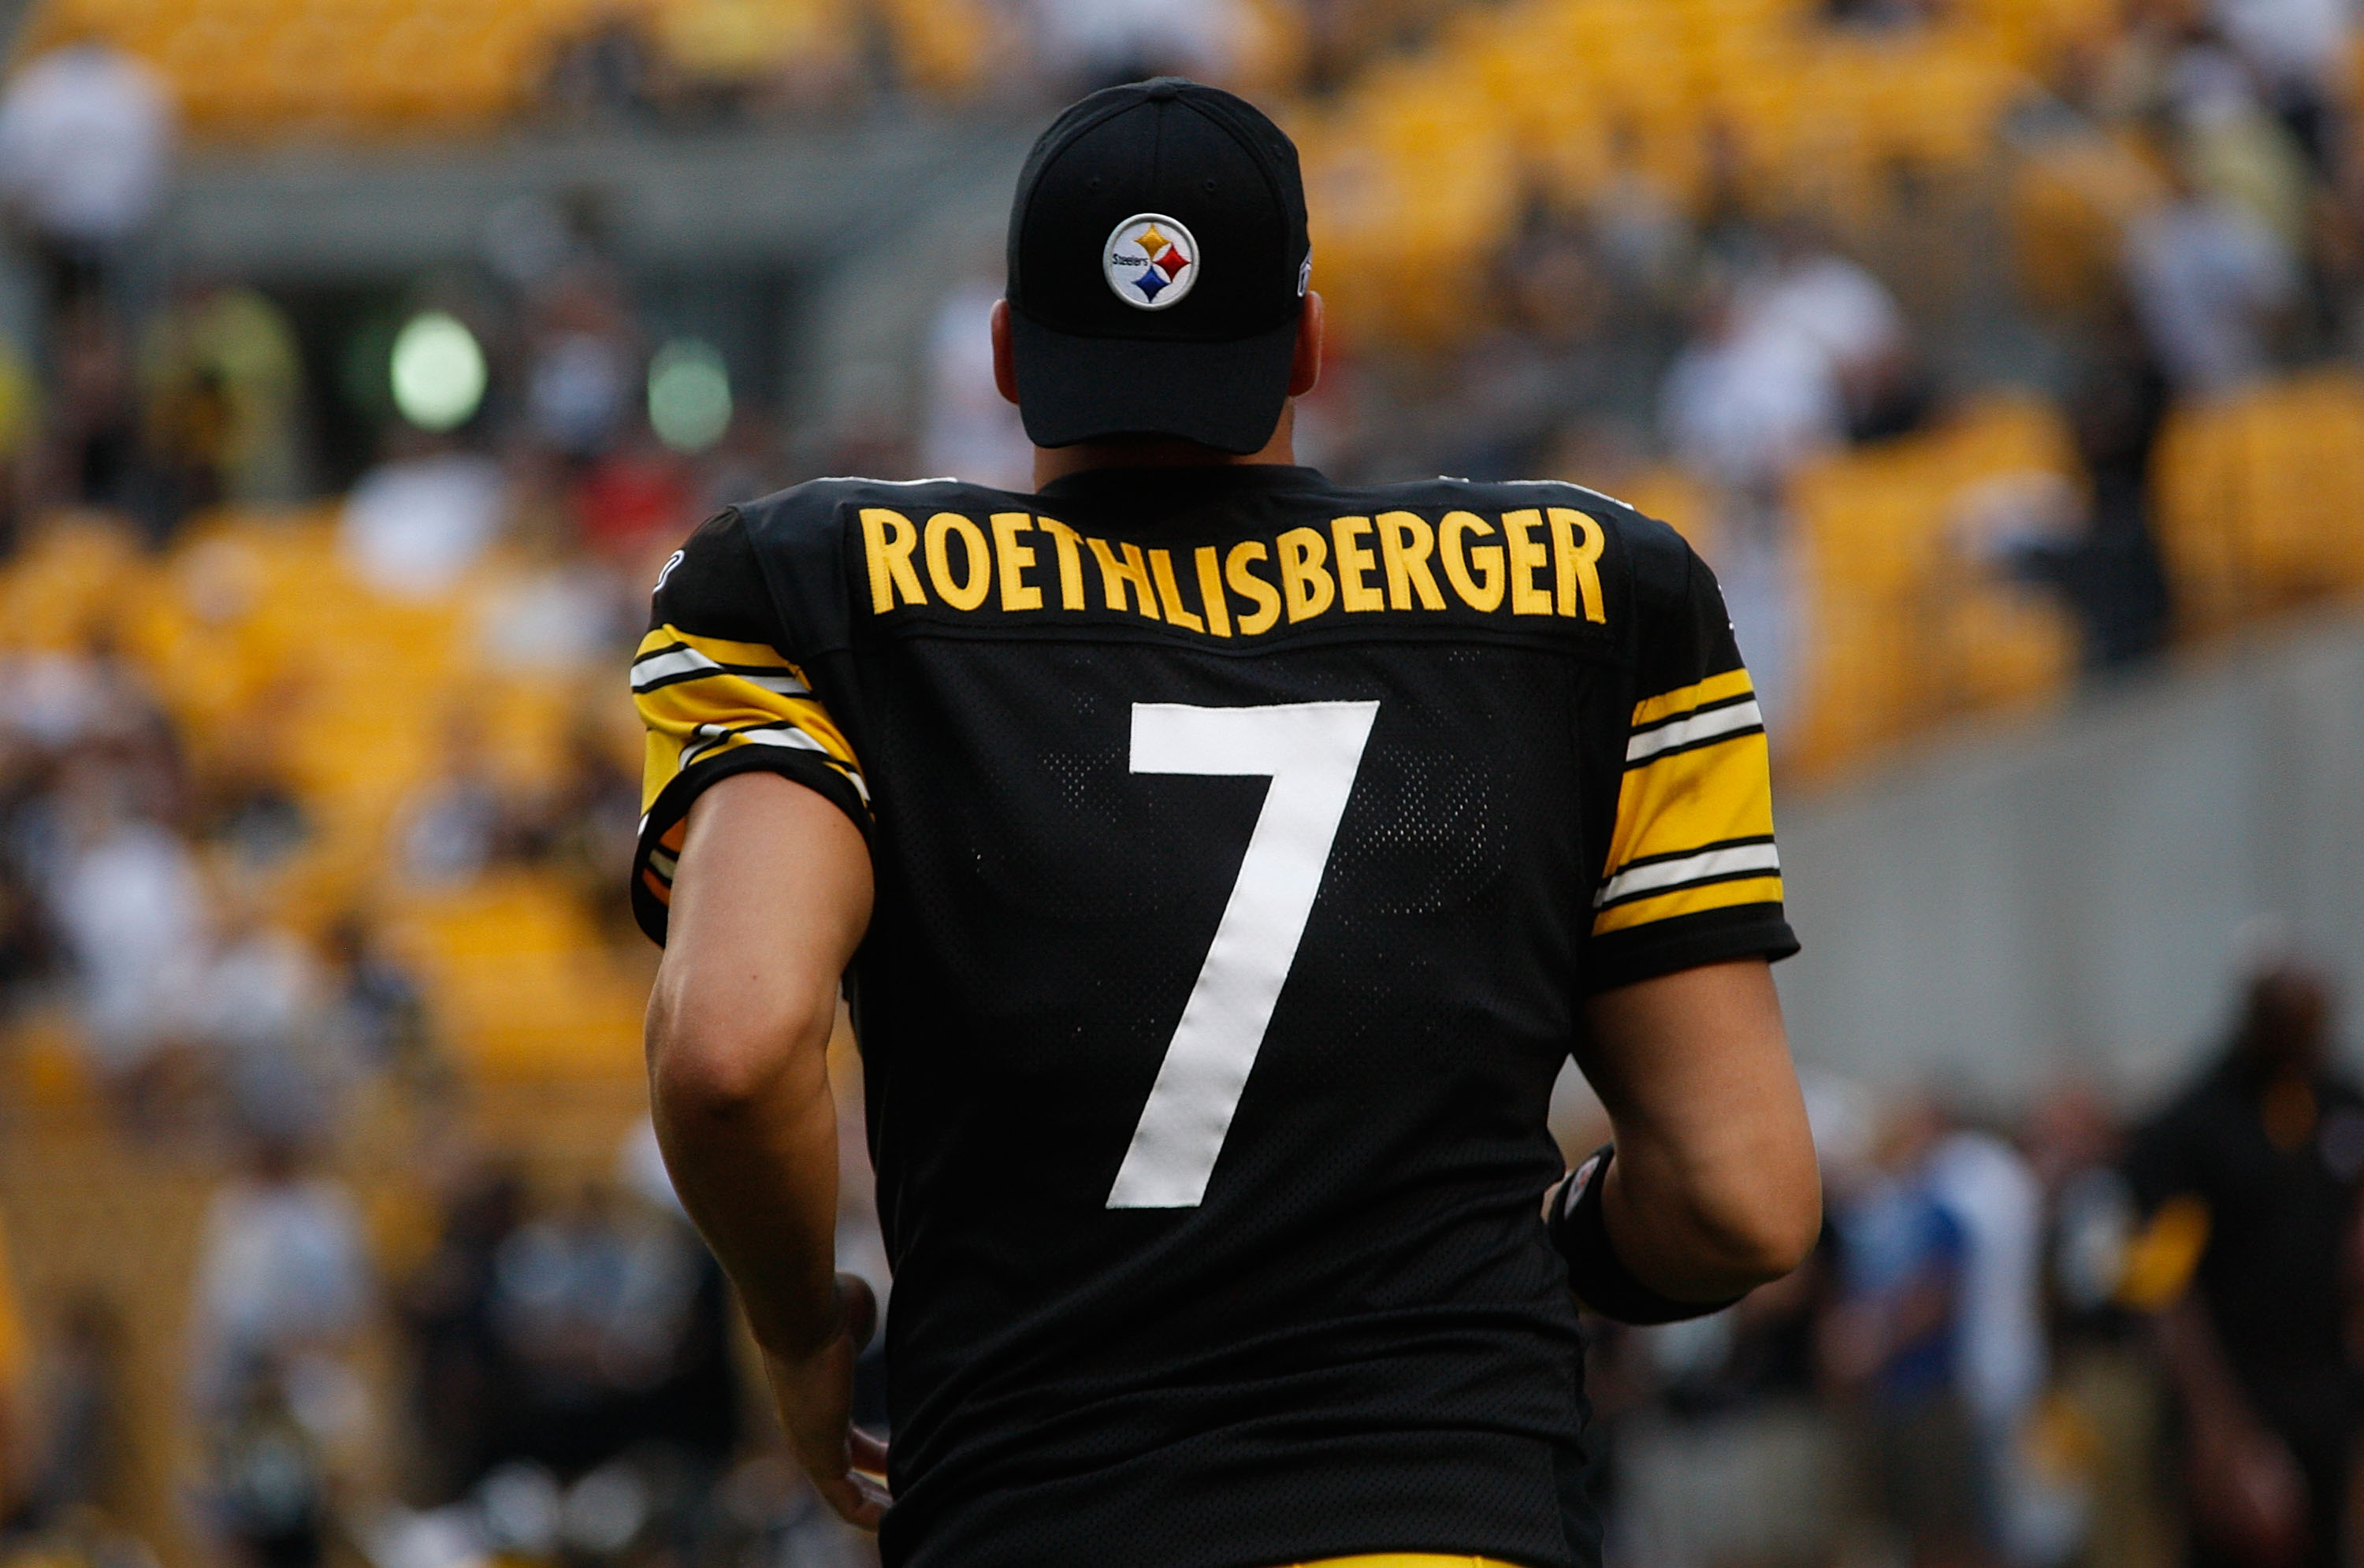 PITTSBURGH - AUGUST 14:  Ben Roethlisberger #7 of the Pittsburgh Steelers warms up prior to the game against the Detroit Lions on August 14, 2010 at Heinz Field in Pittsburgh, Pennsylvania. Steelers won 23-7.  (Photo by Jared Wickerham/Getty Images)